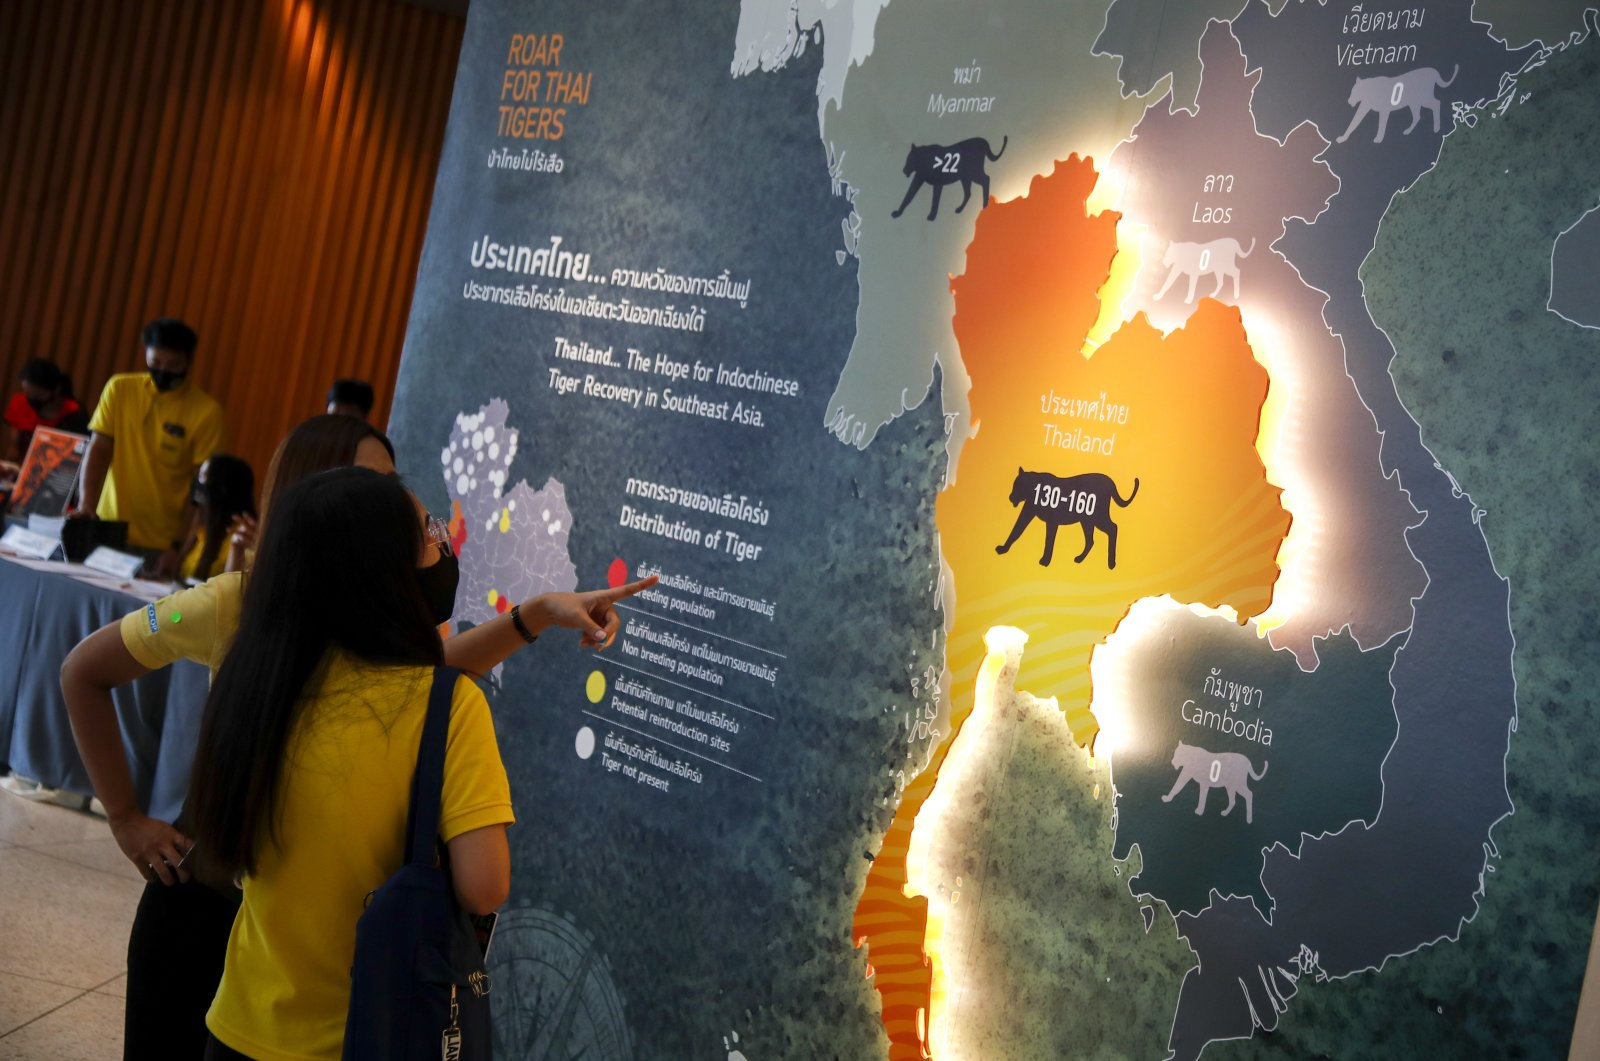 """People look at a map of Indo-China tigers' distribution at the exhibit """"Roar for Thai Tigers"""" to celebrate International Tiger Day in Bangkok, Thailand, July 29, 2020. (EPA Photo)"""